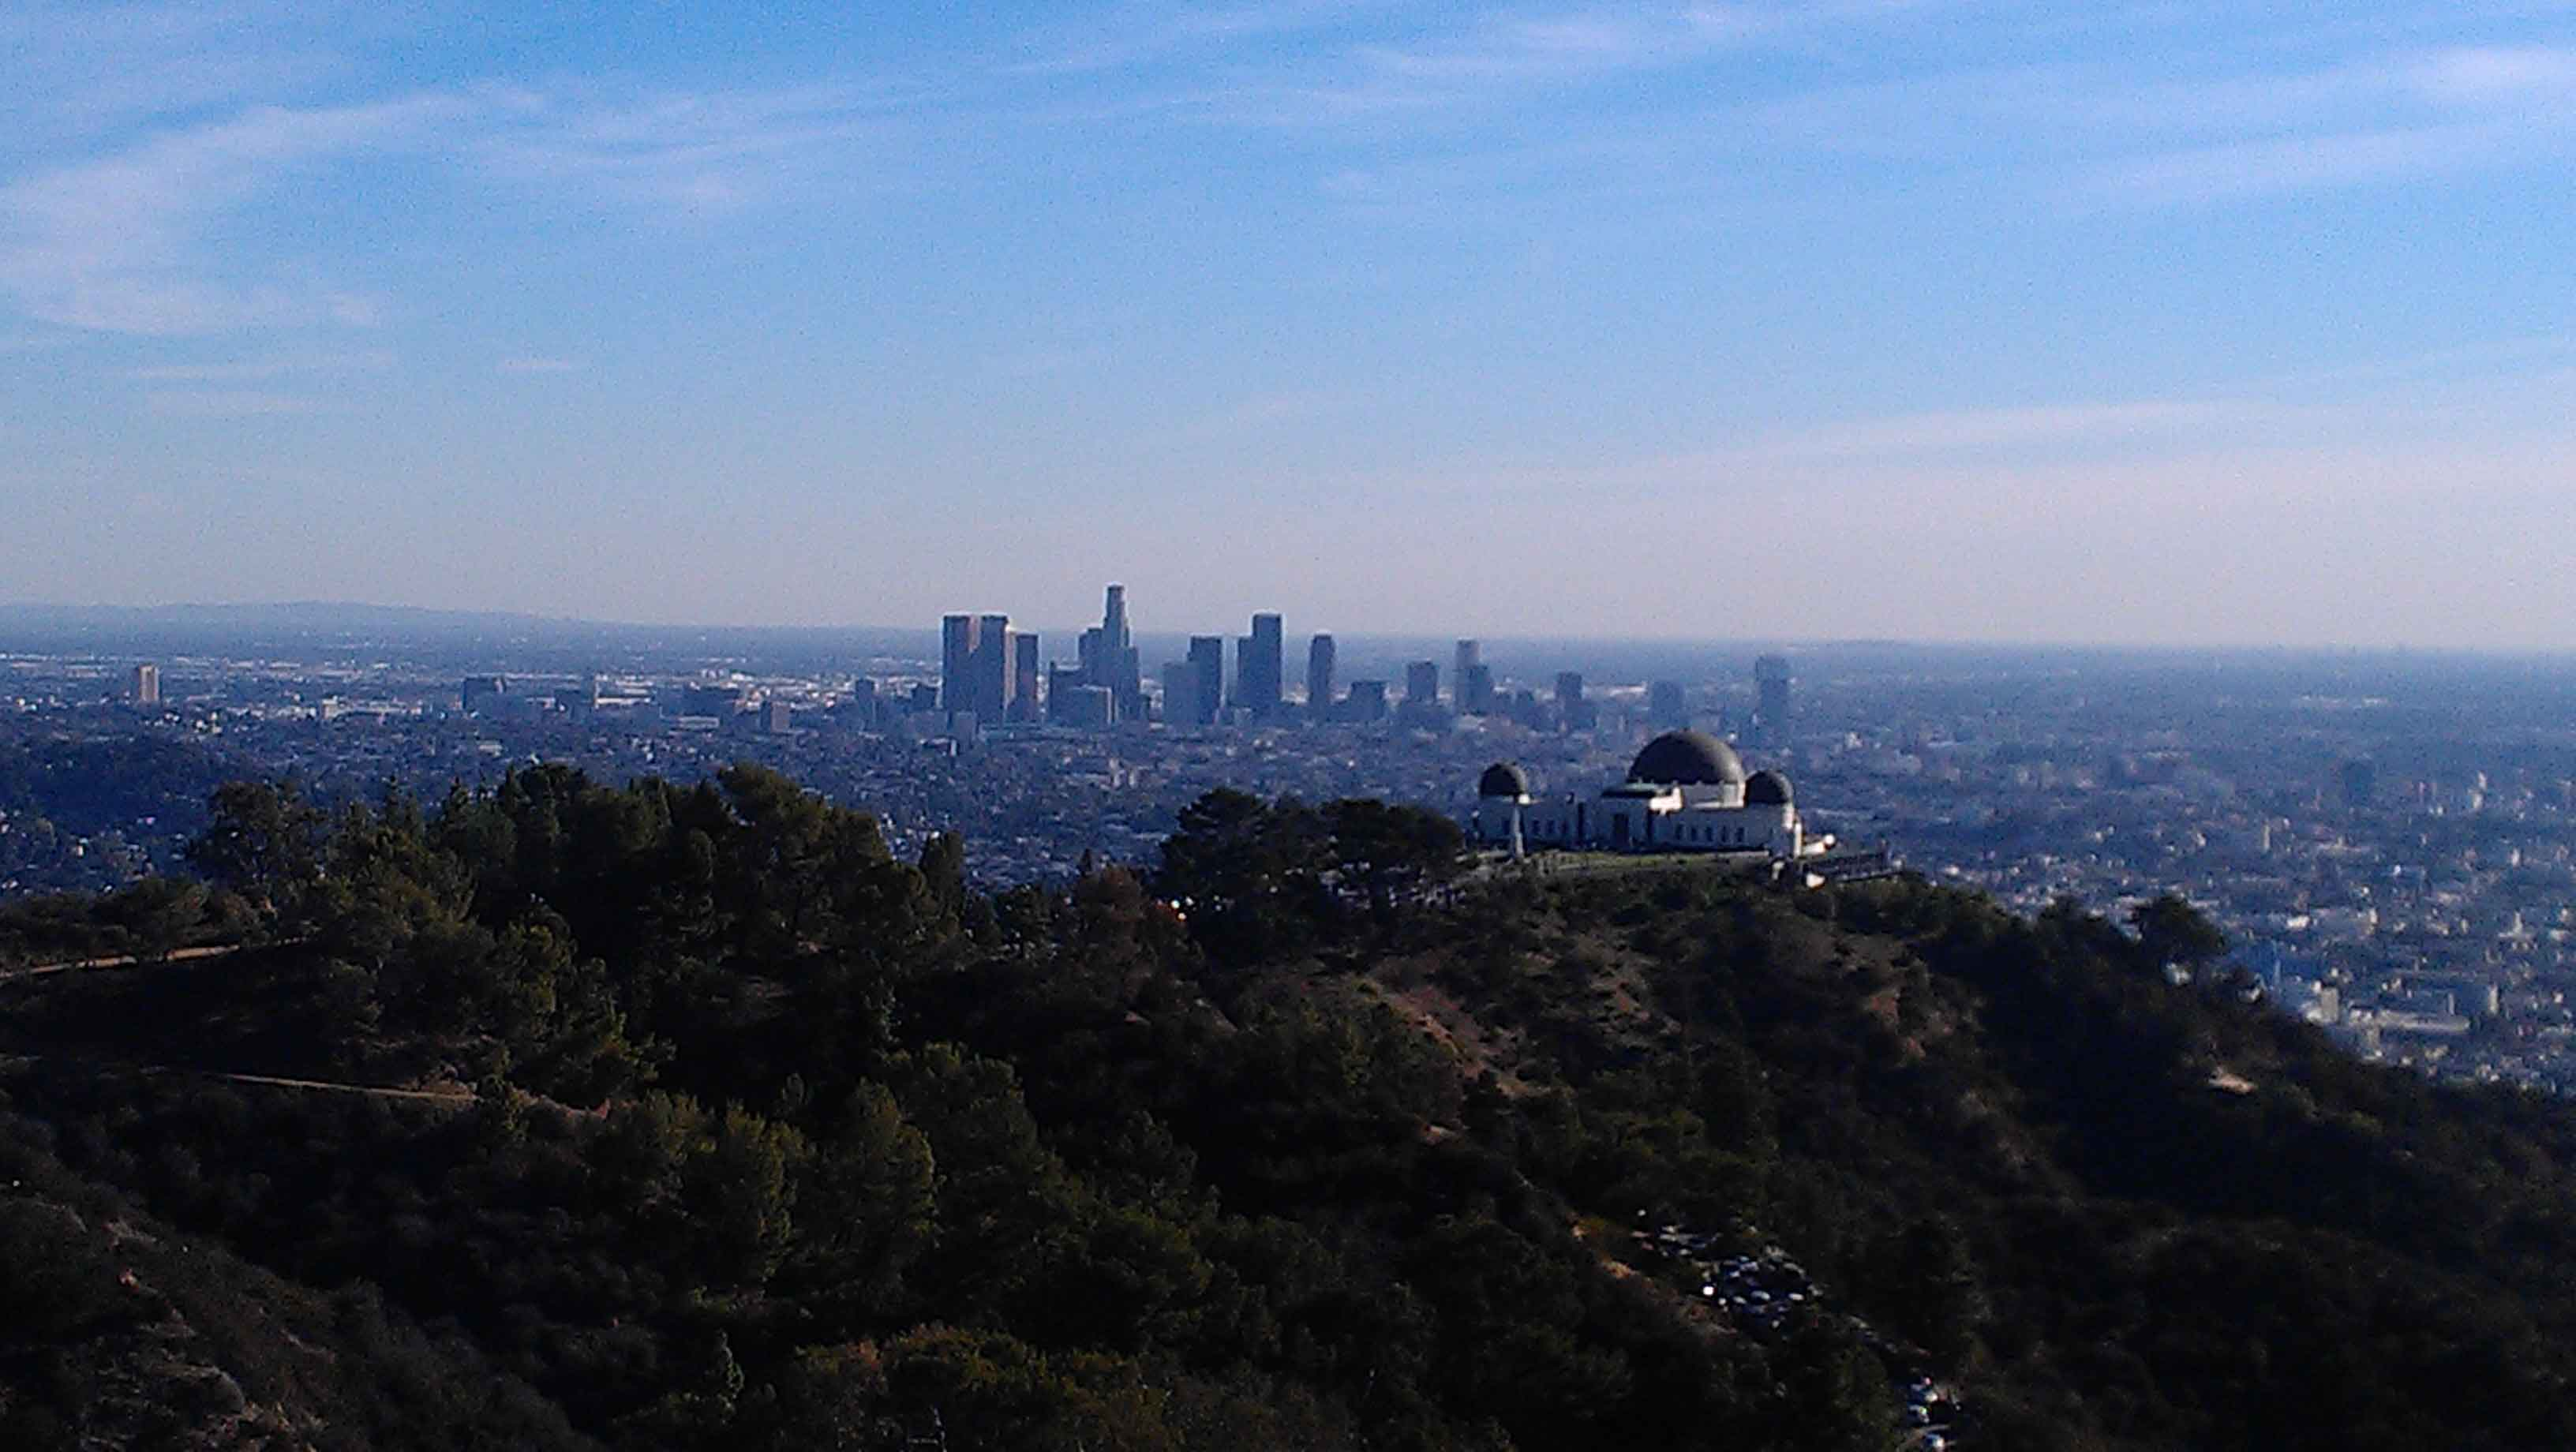 griffith_park-lowres